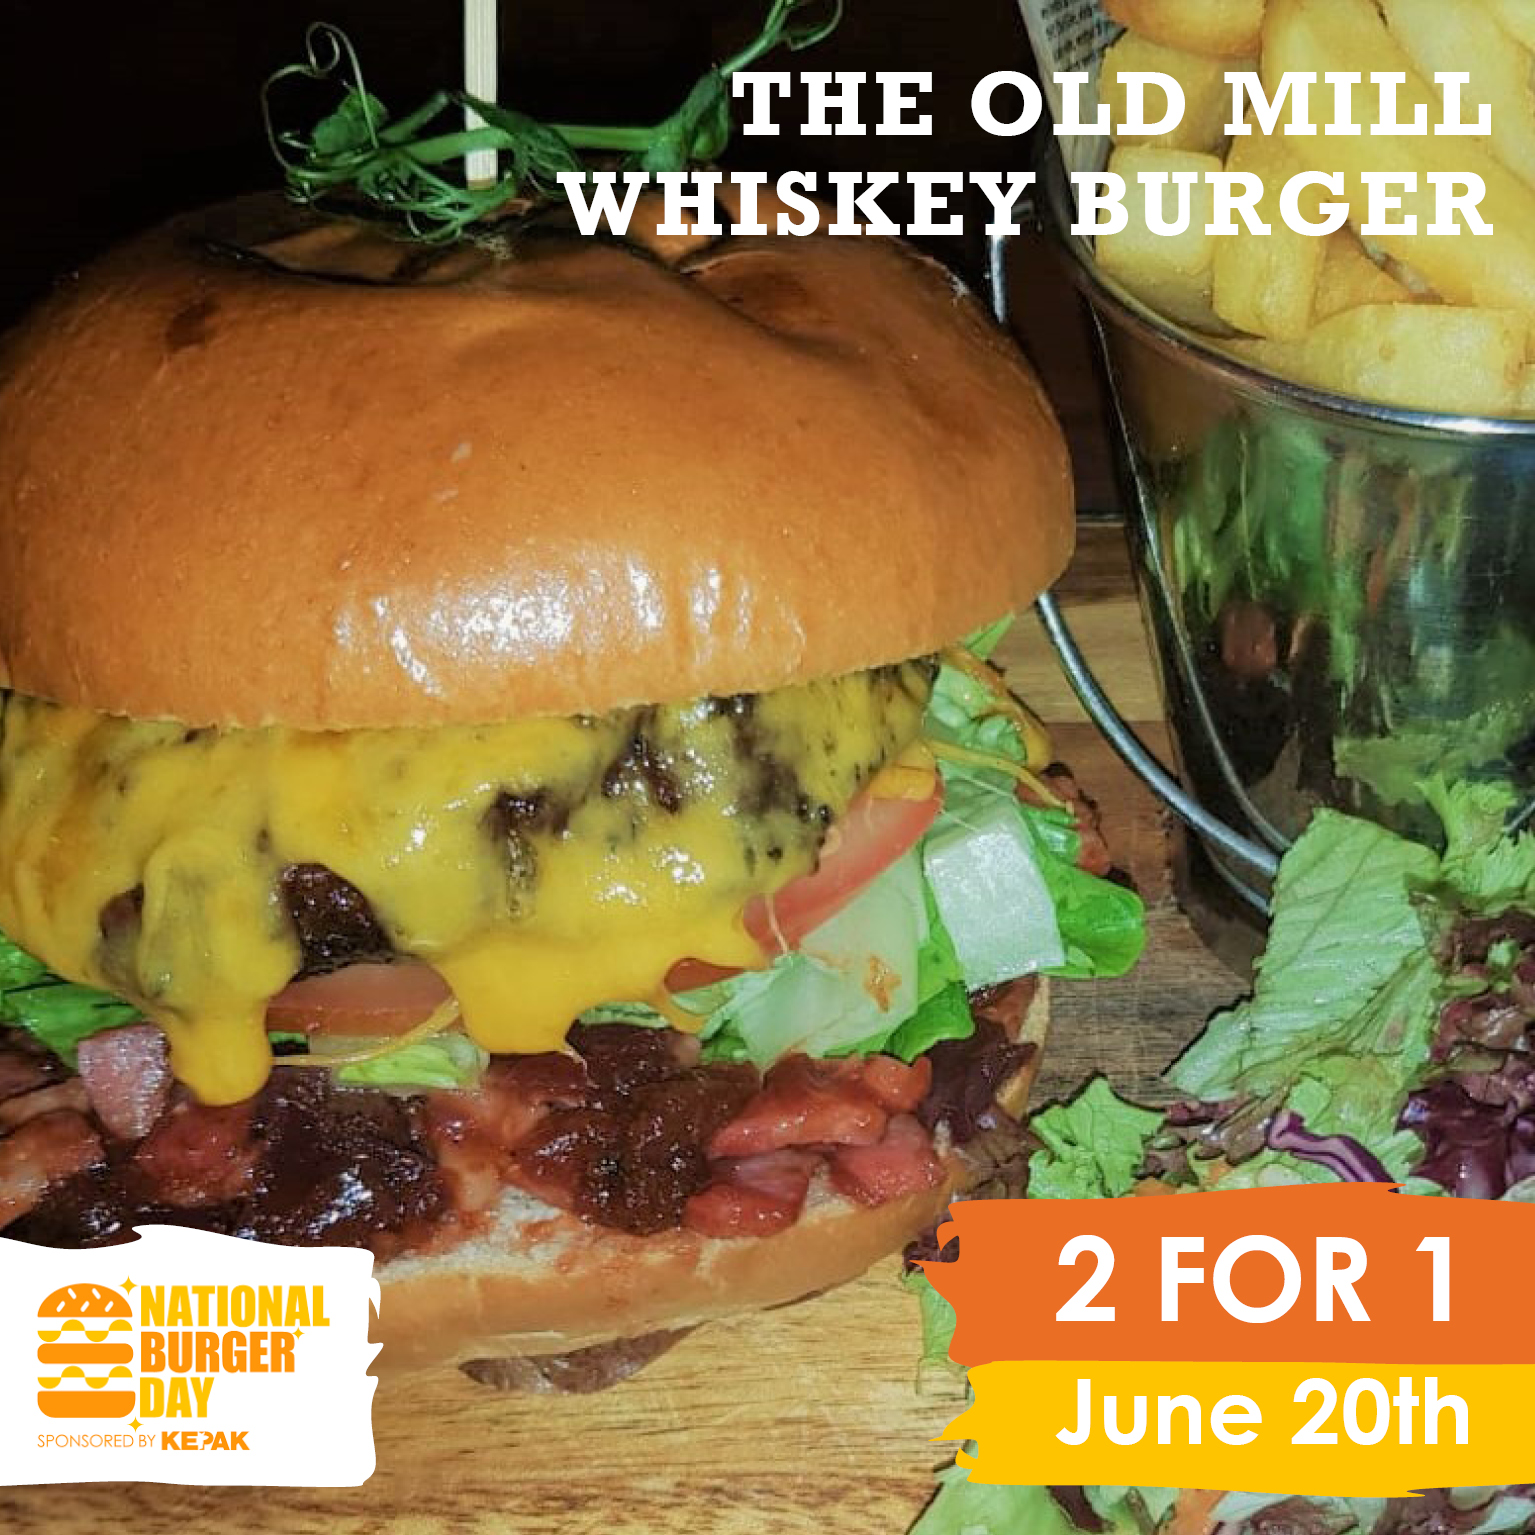 Enjoy a Buy One Get One Free offer on our Whiskey Burger for National Burger Day